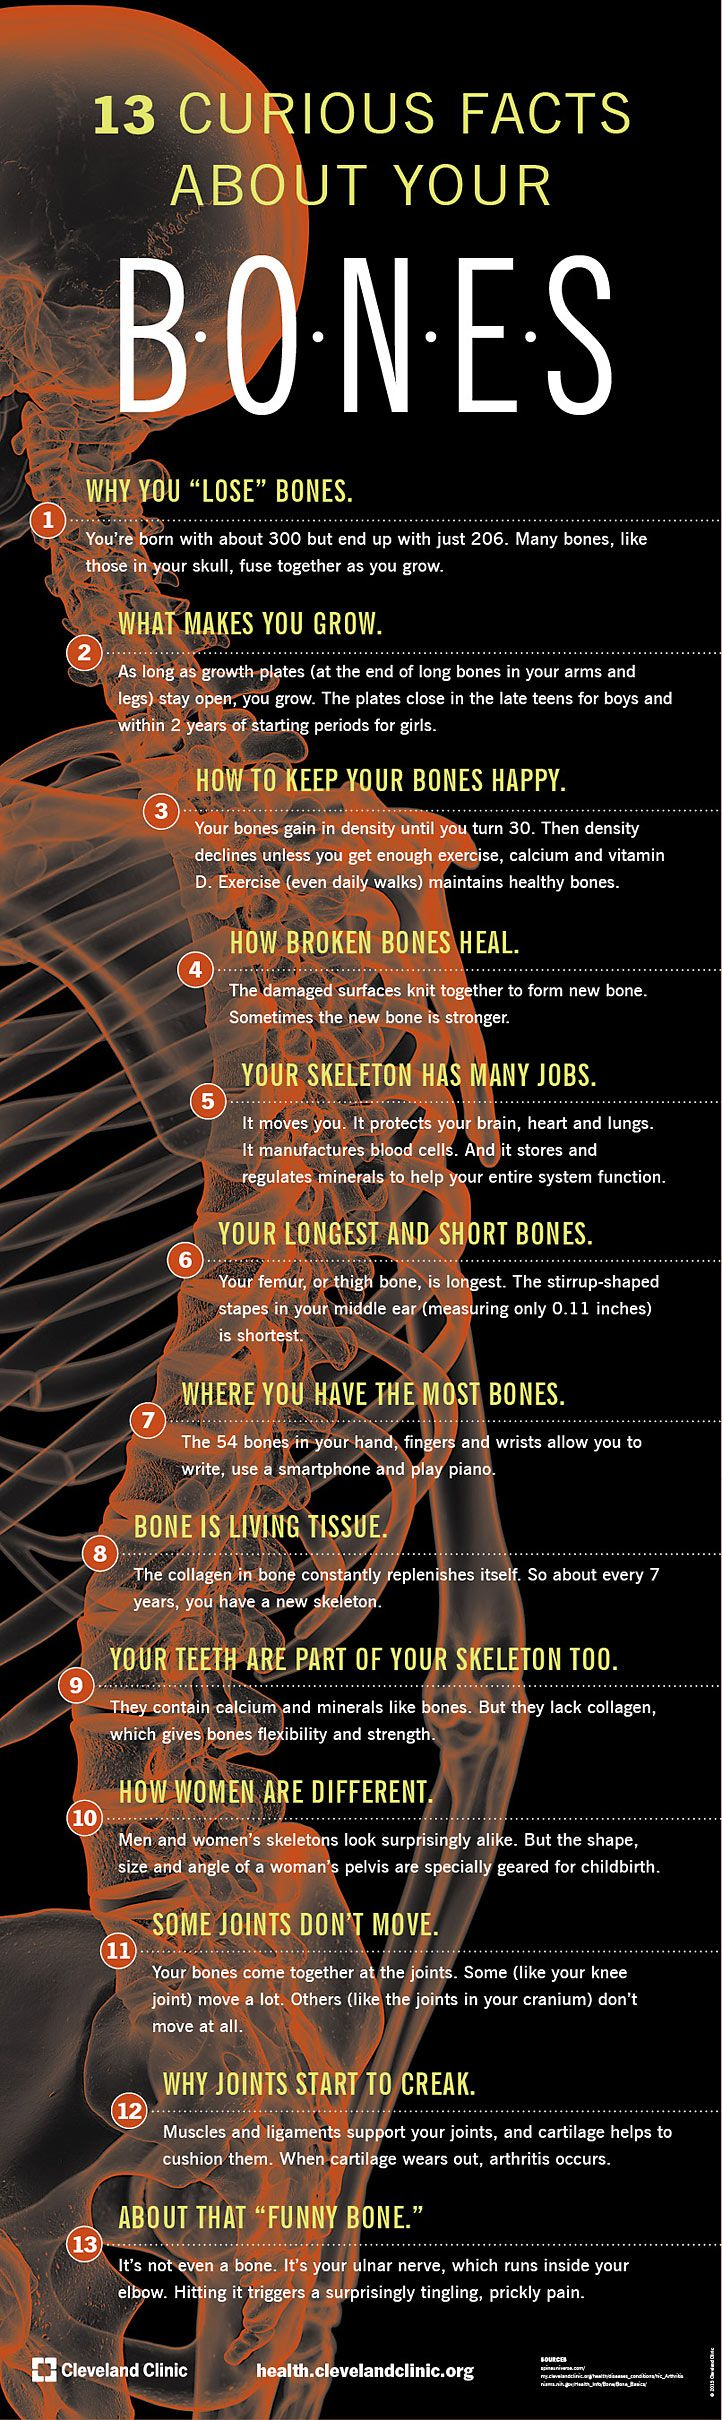 Orange county ca s premier non surgical spinal decompression clinic - 13 Curious Facts About Your Bones